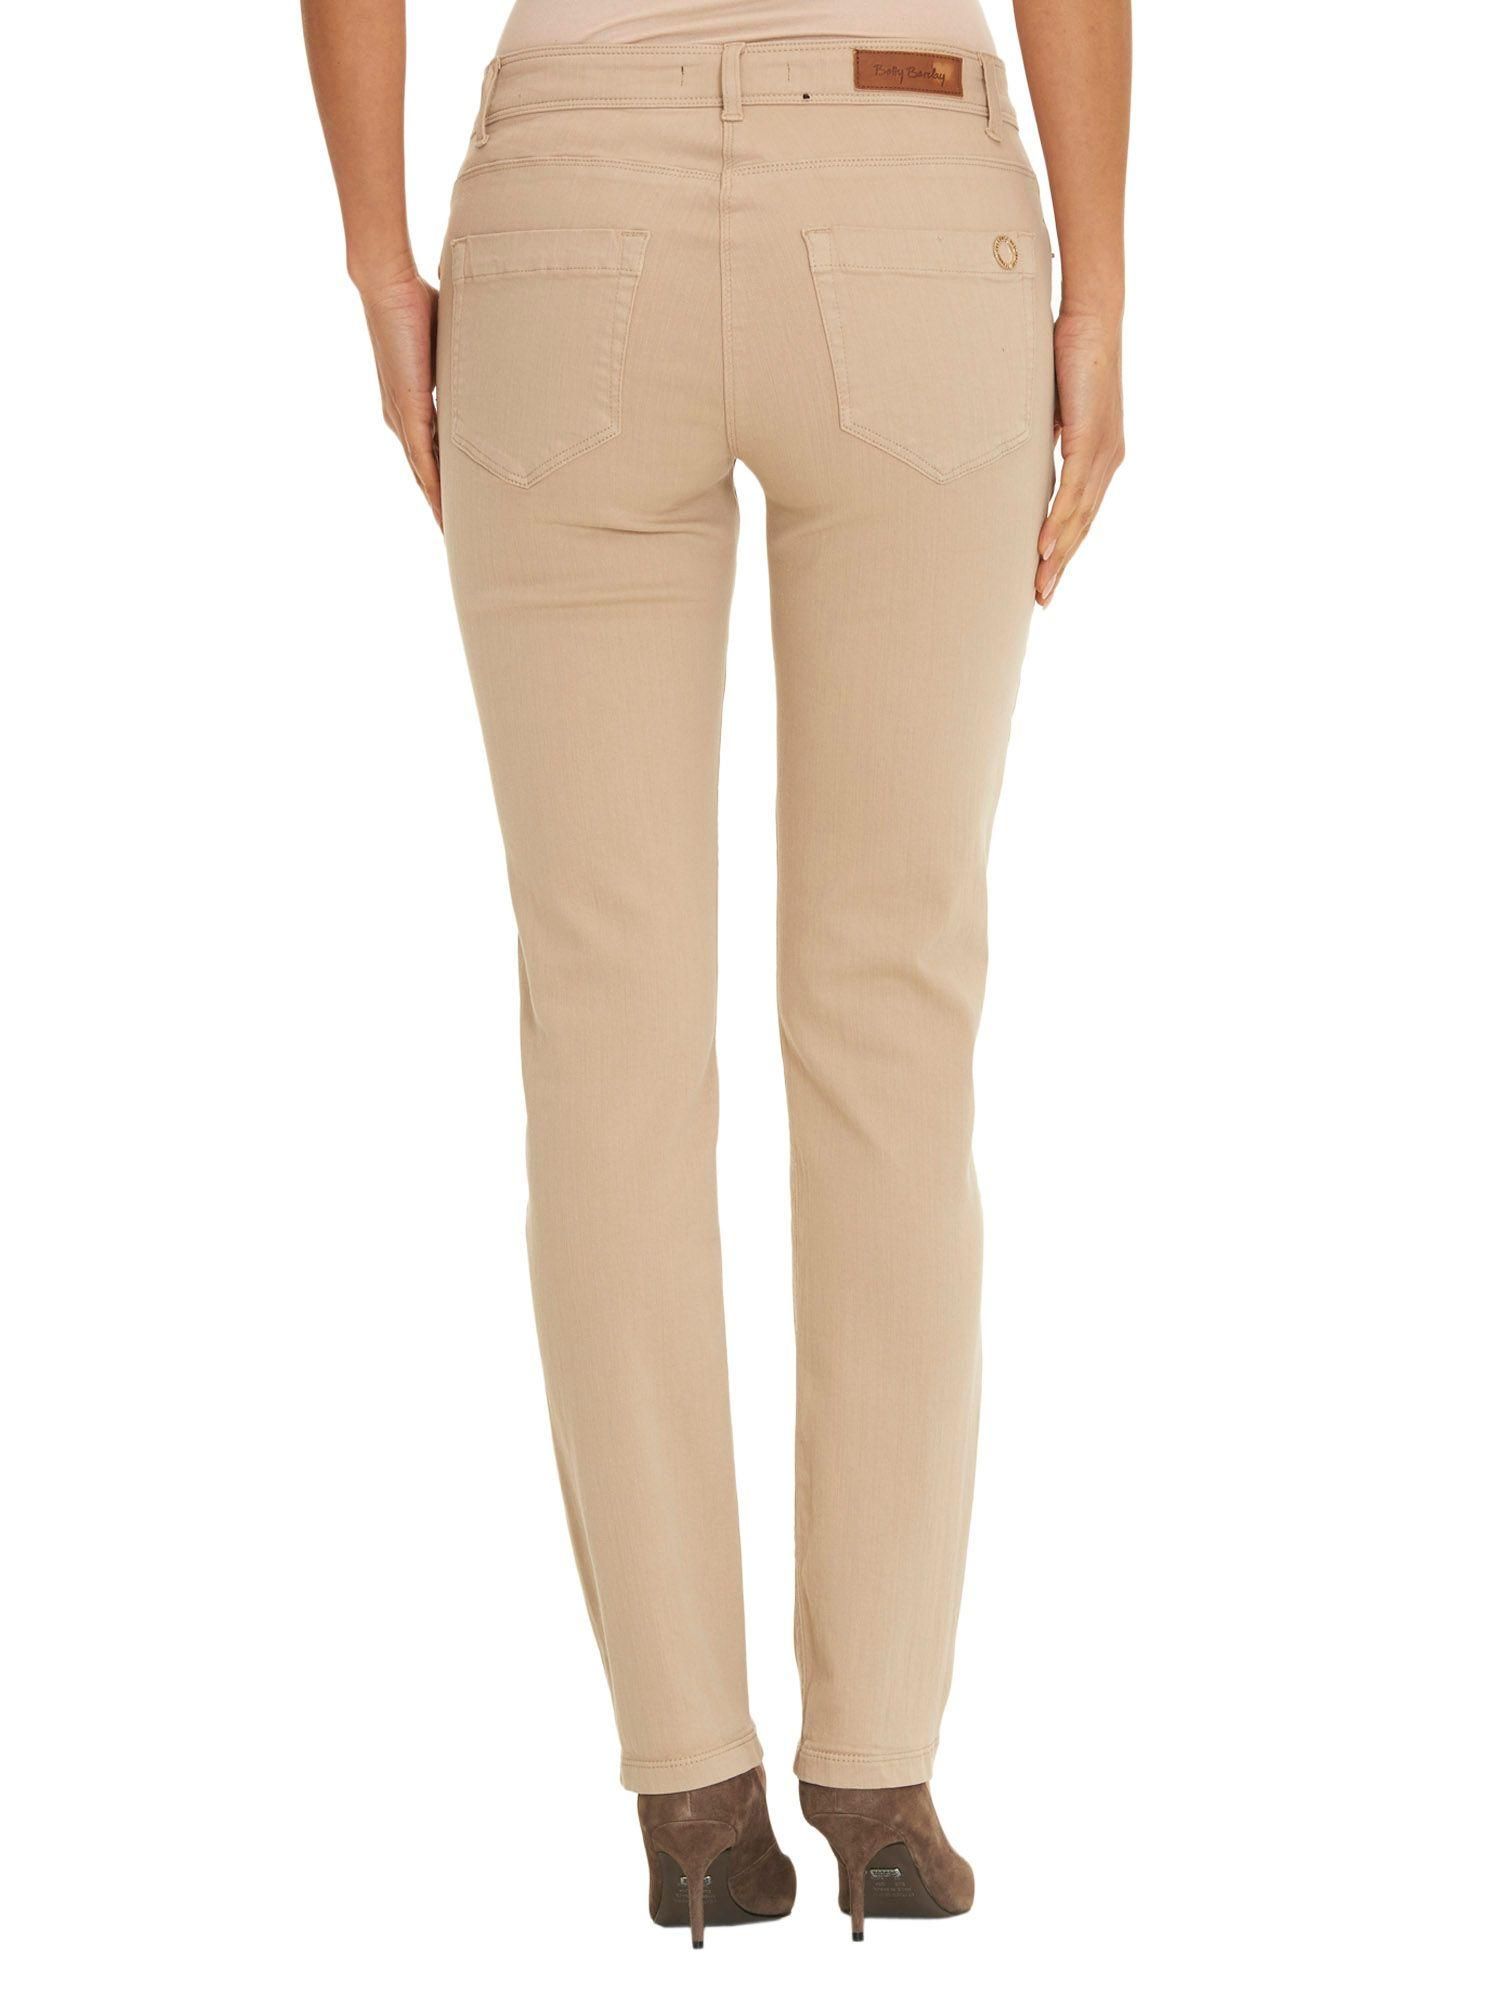 Betty Barclay Denim Perfect Slim Five Pocket Jeans in Beige (Natural)